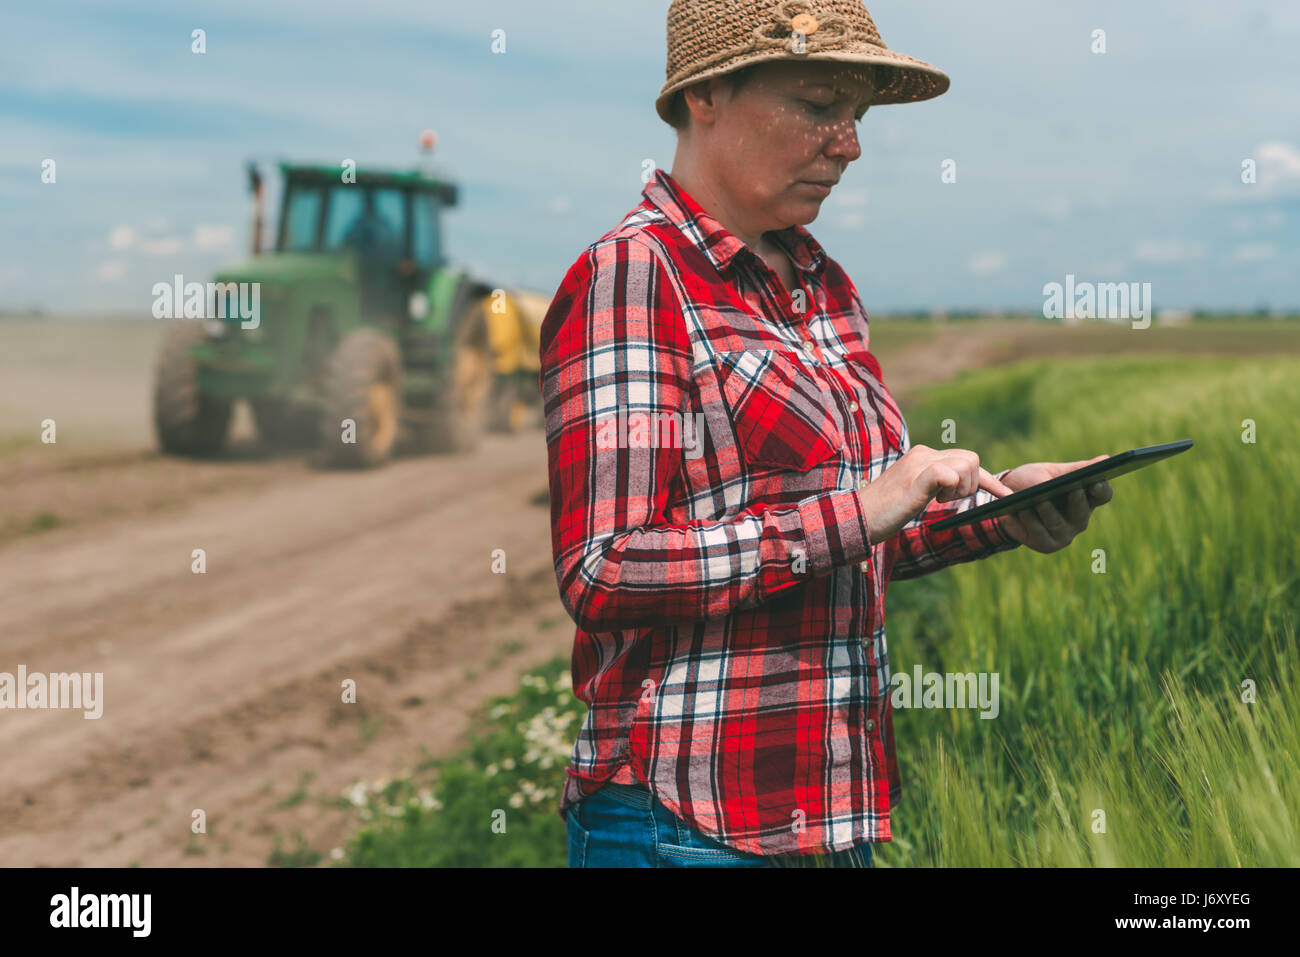 Smart Farming Using Modern Technology In Agricultural Activity Female Farmer Agronomist With Digital Tablet Computer Mobile App Wheat Crops